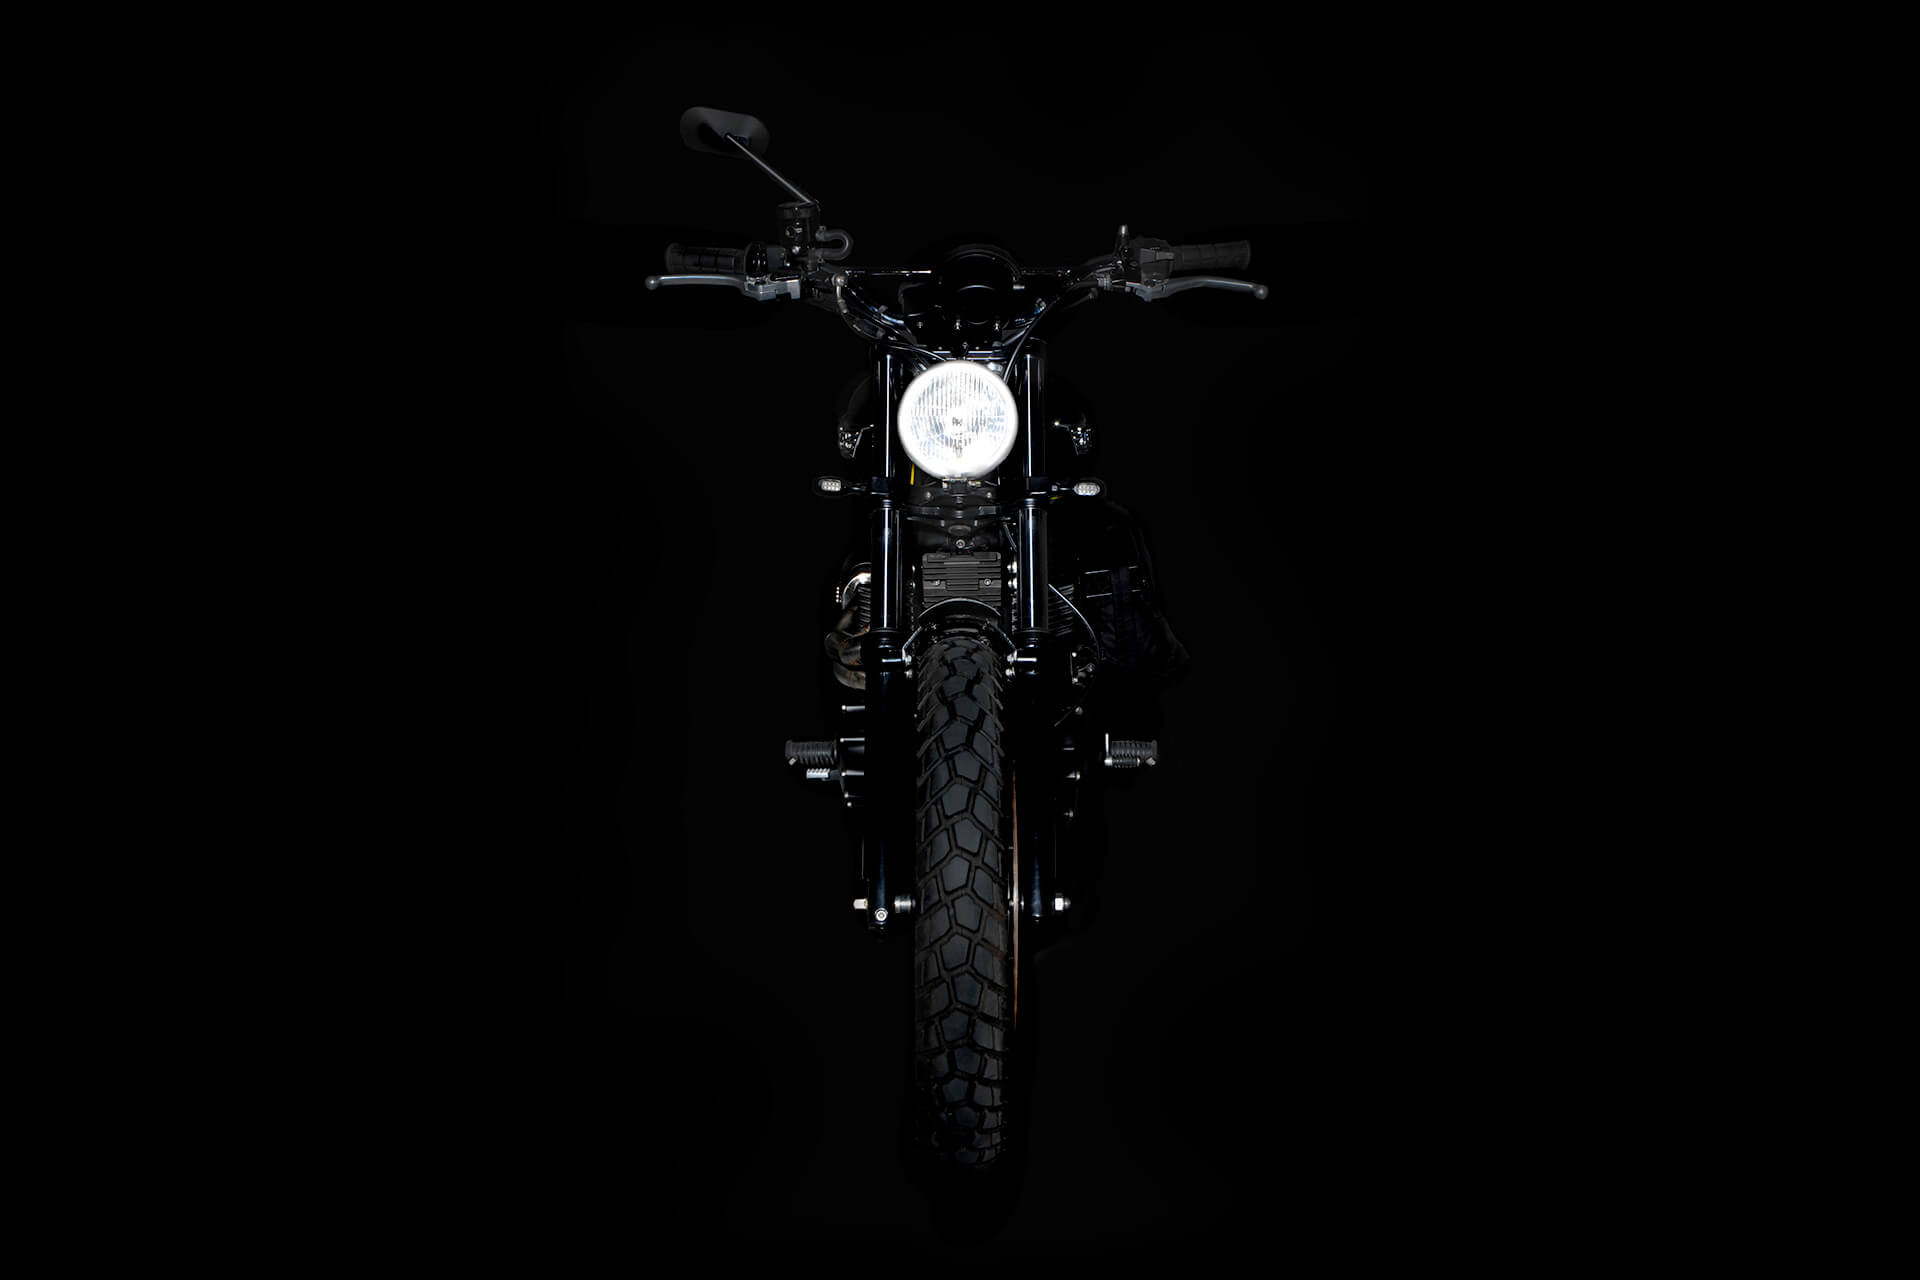 A225, Scrambler, Barbour, Barbour International, Britain, British, Photography, Film, WeAreShuffle, Biker, Motorcycle, Leather, Breaks, Break Discs, Triumph, Front, Light